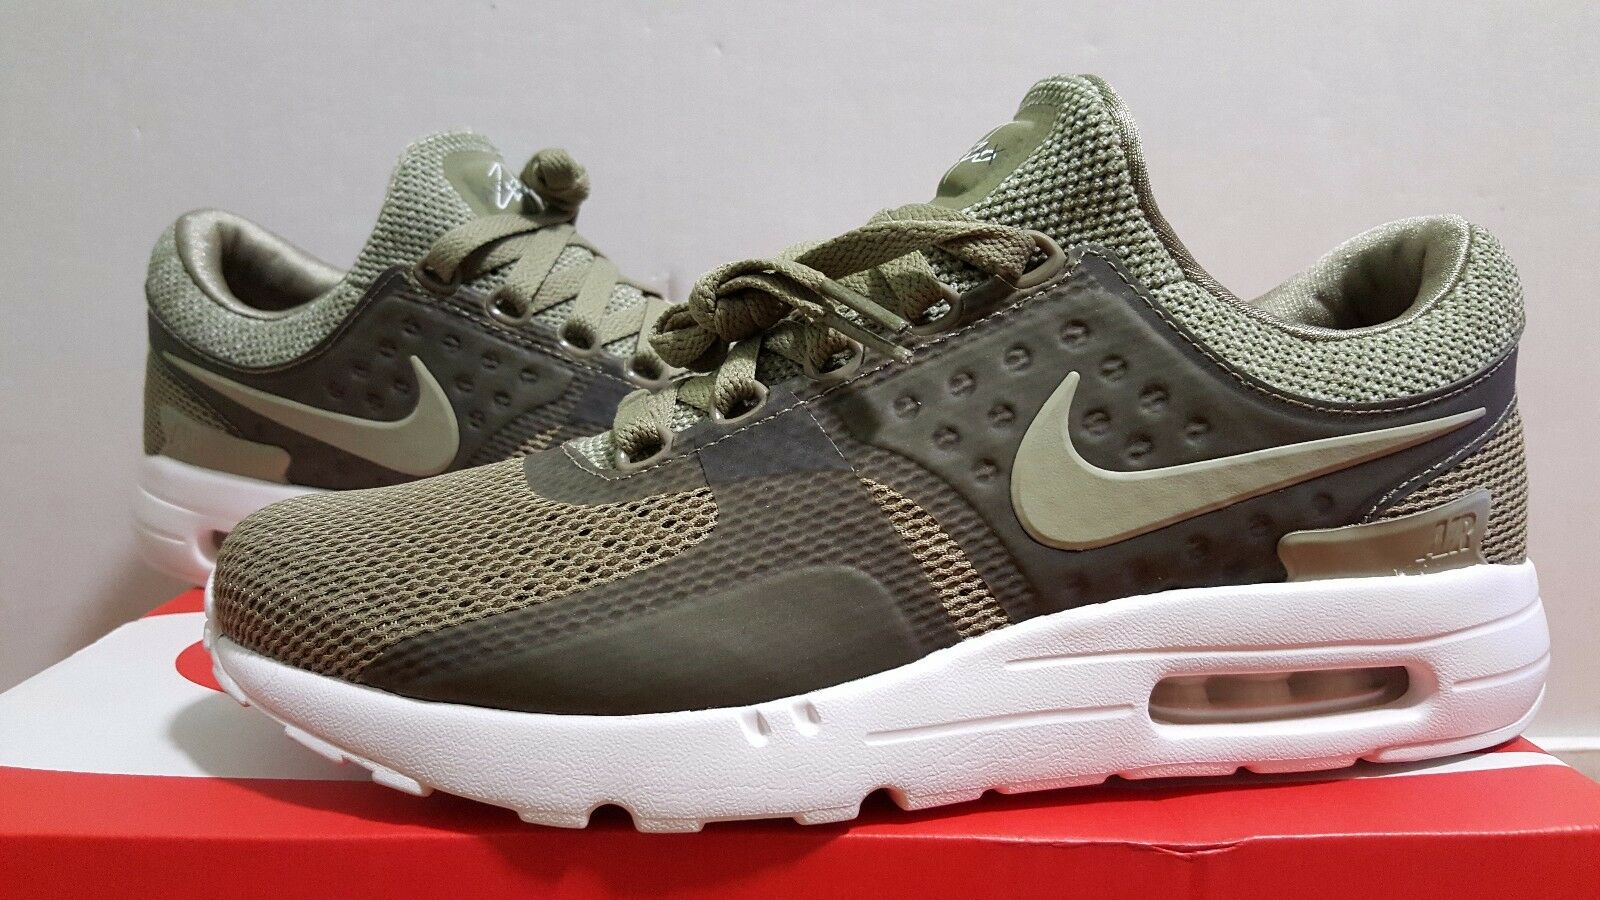 Nike Air Max Zero BR Trooper Olive Green/ Summit White (903892 200)- Size 9.5